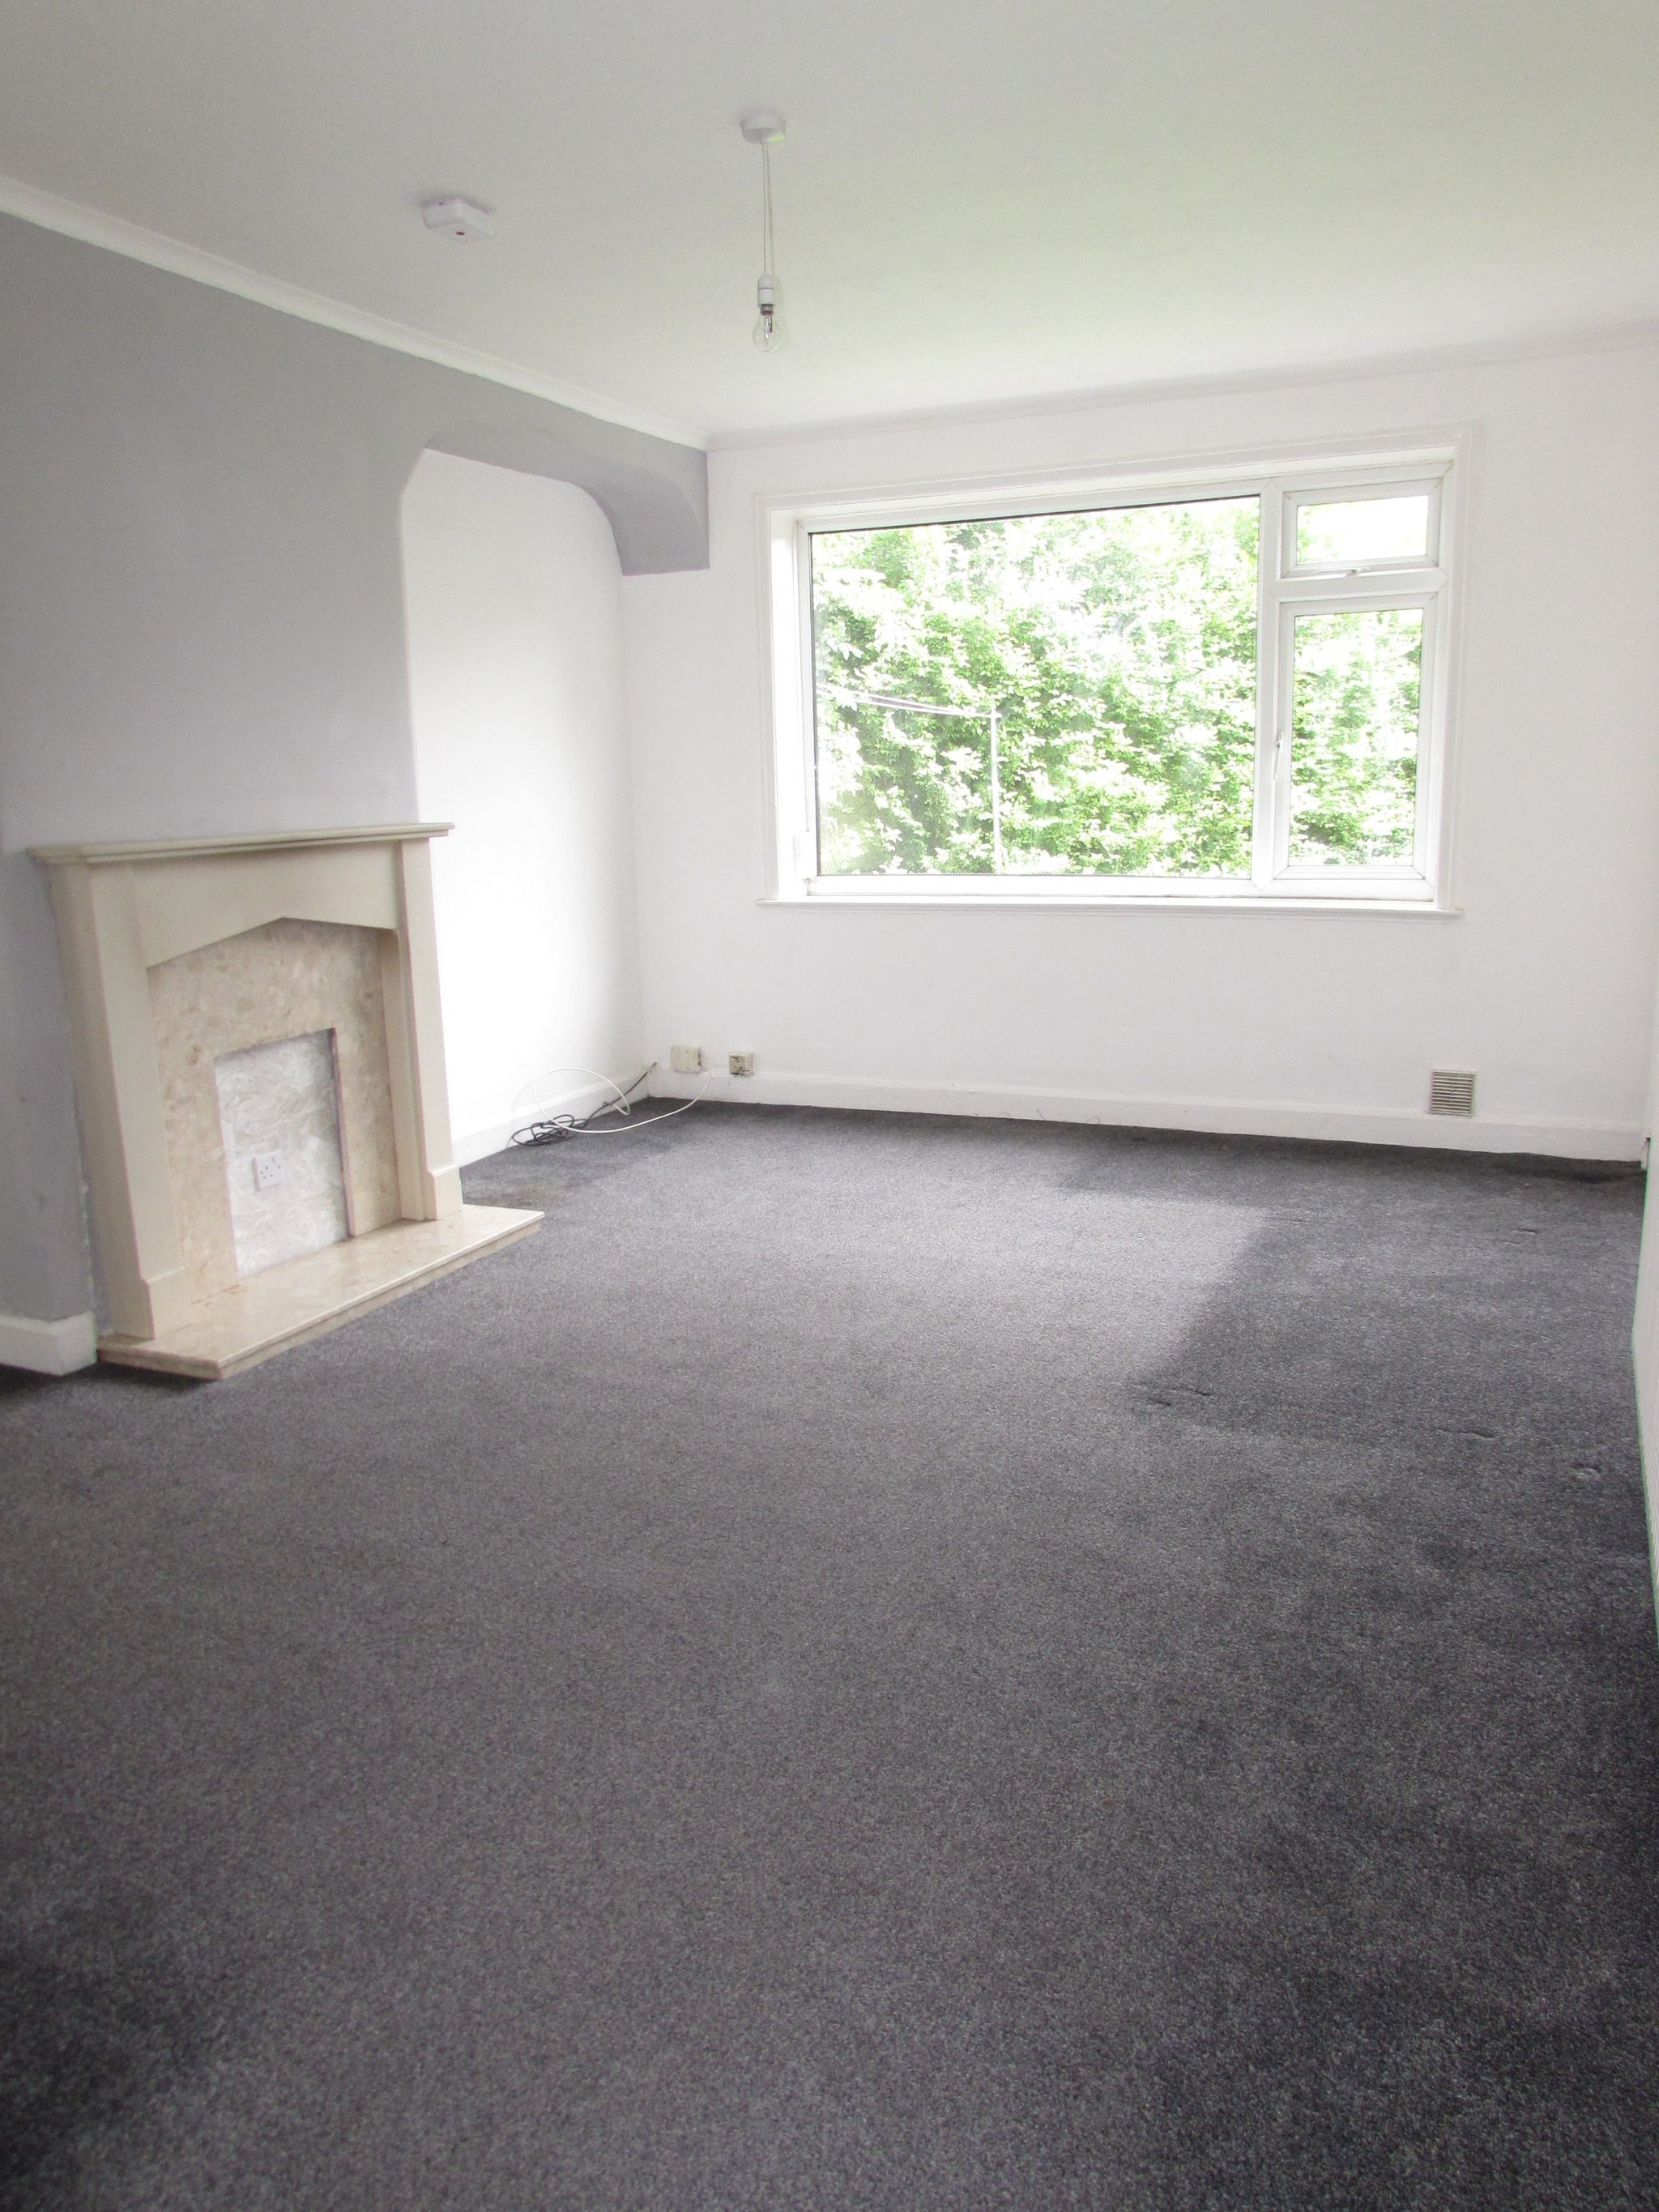 3 Bedroom Semi-detached House To Rent - Lounge